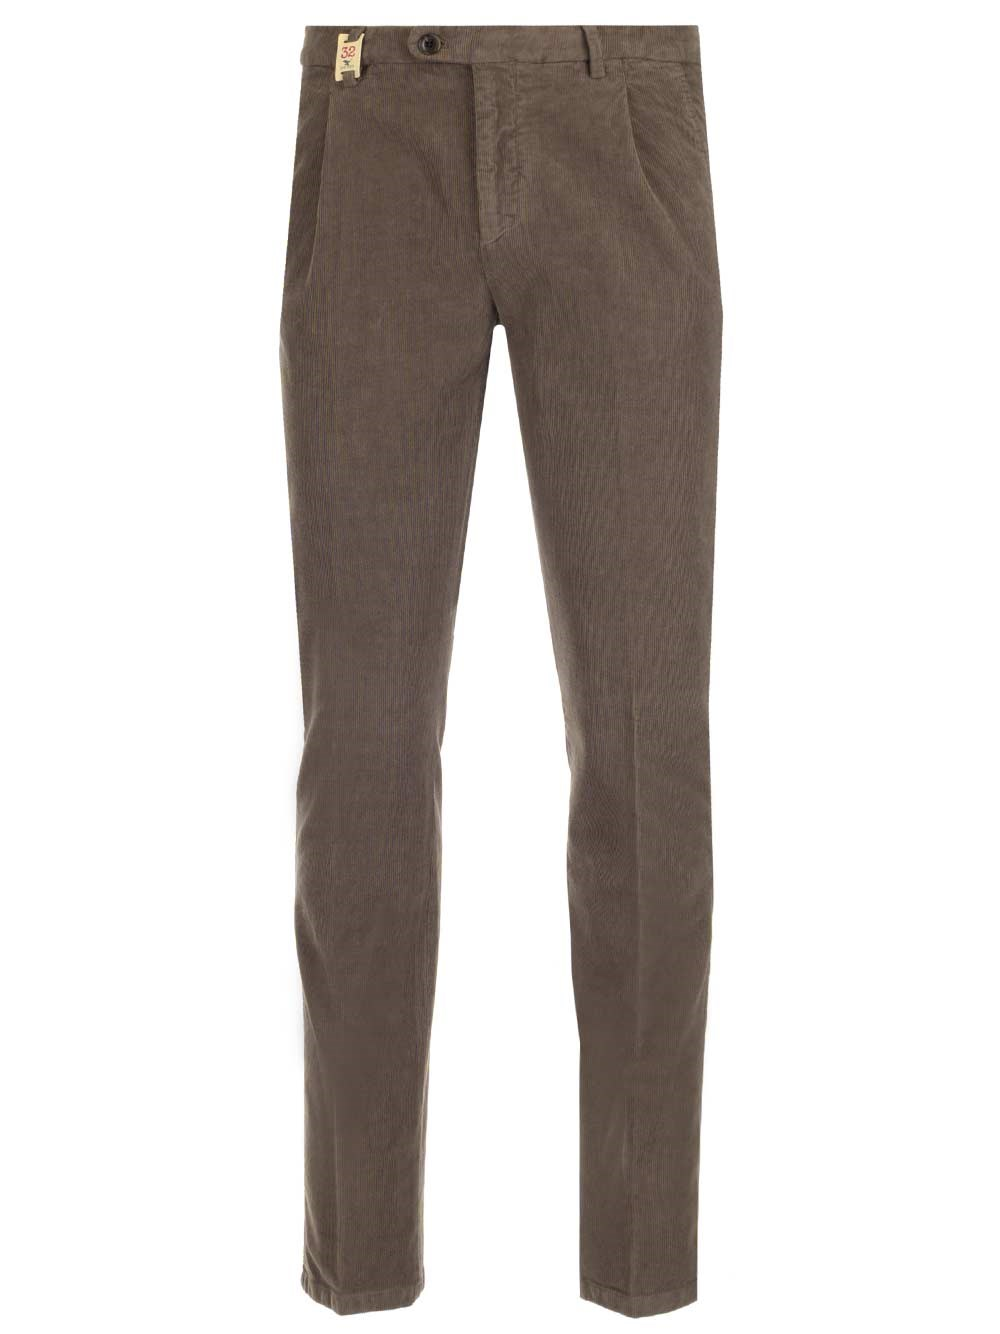 BARMAS Slim Fit Velvet Trousers